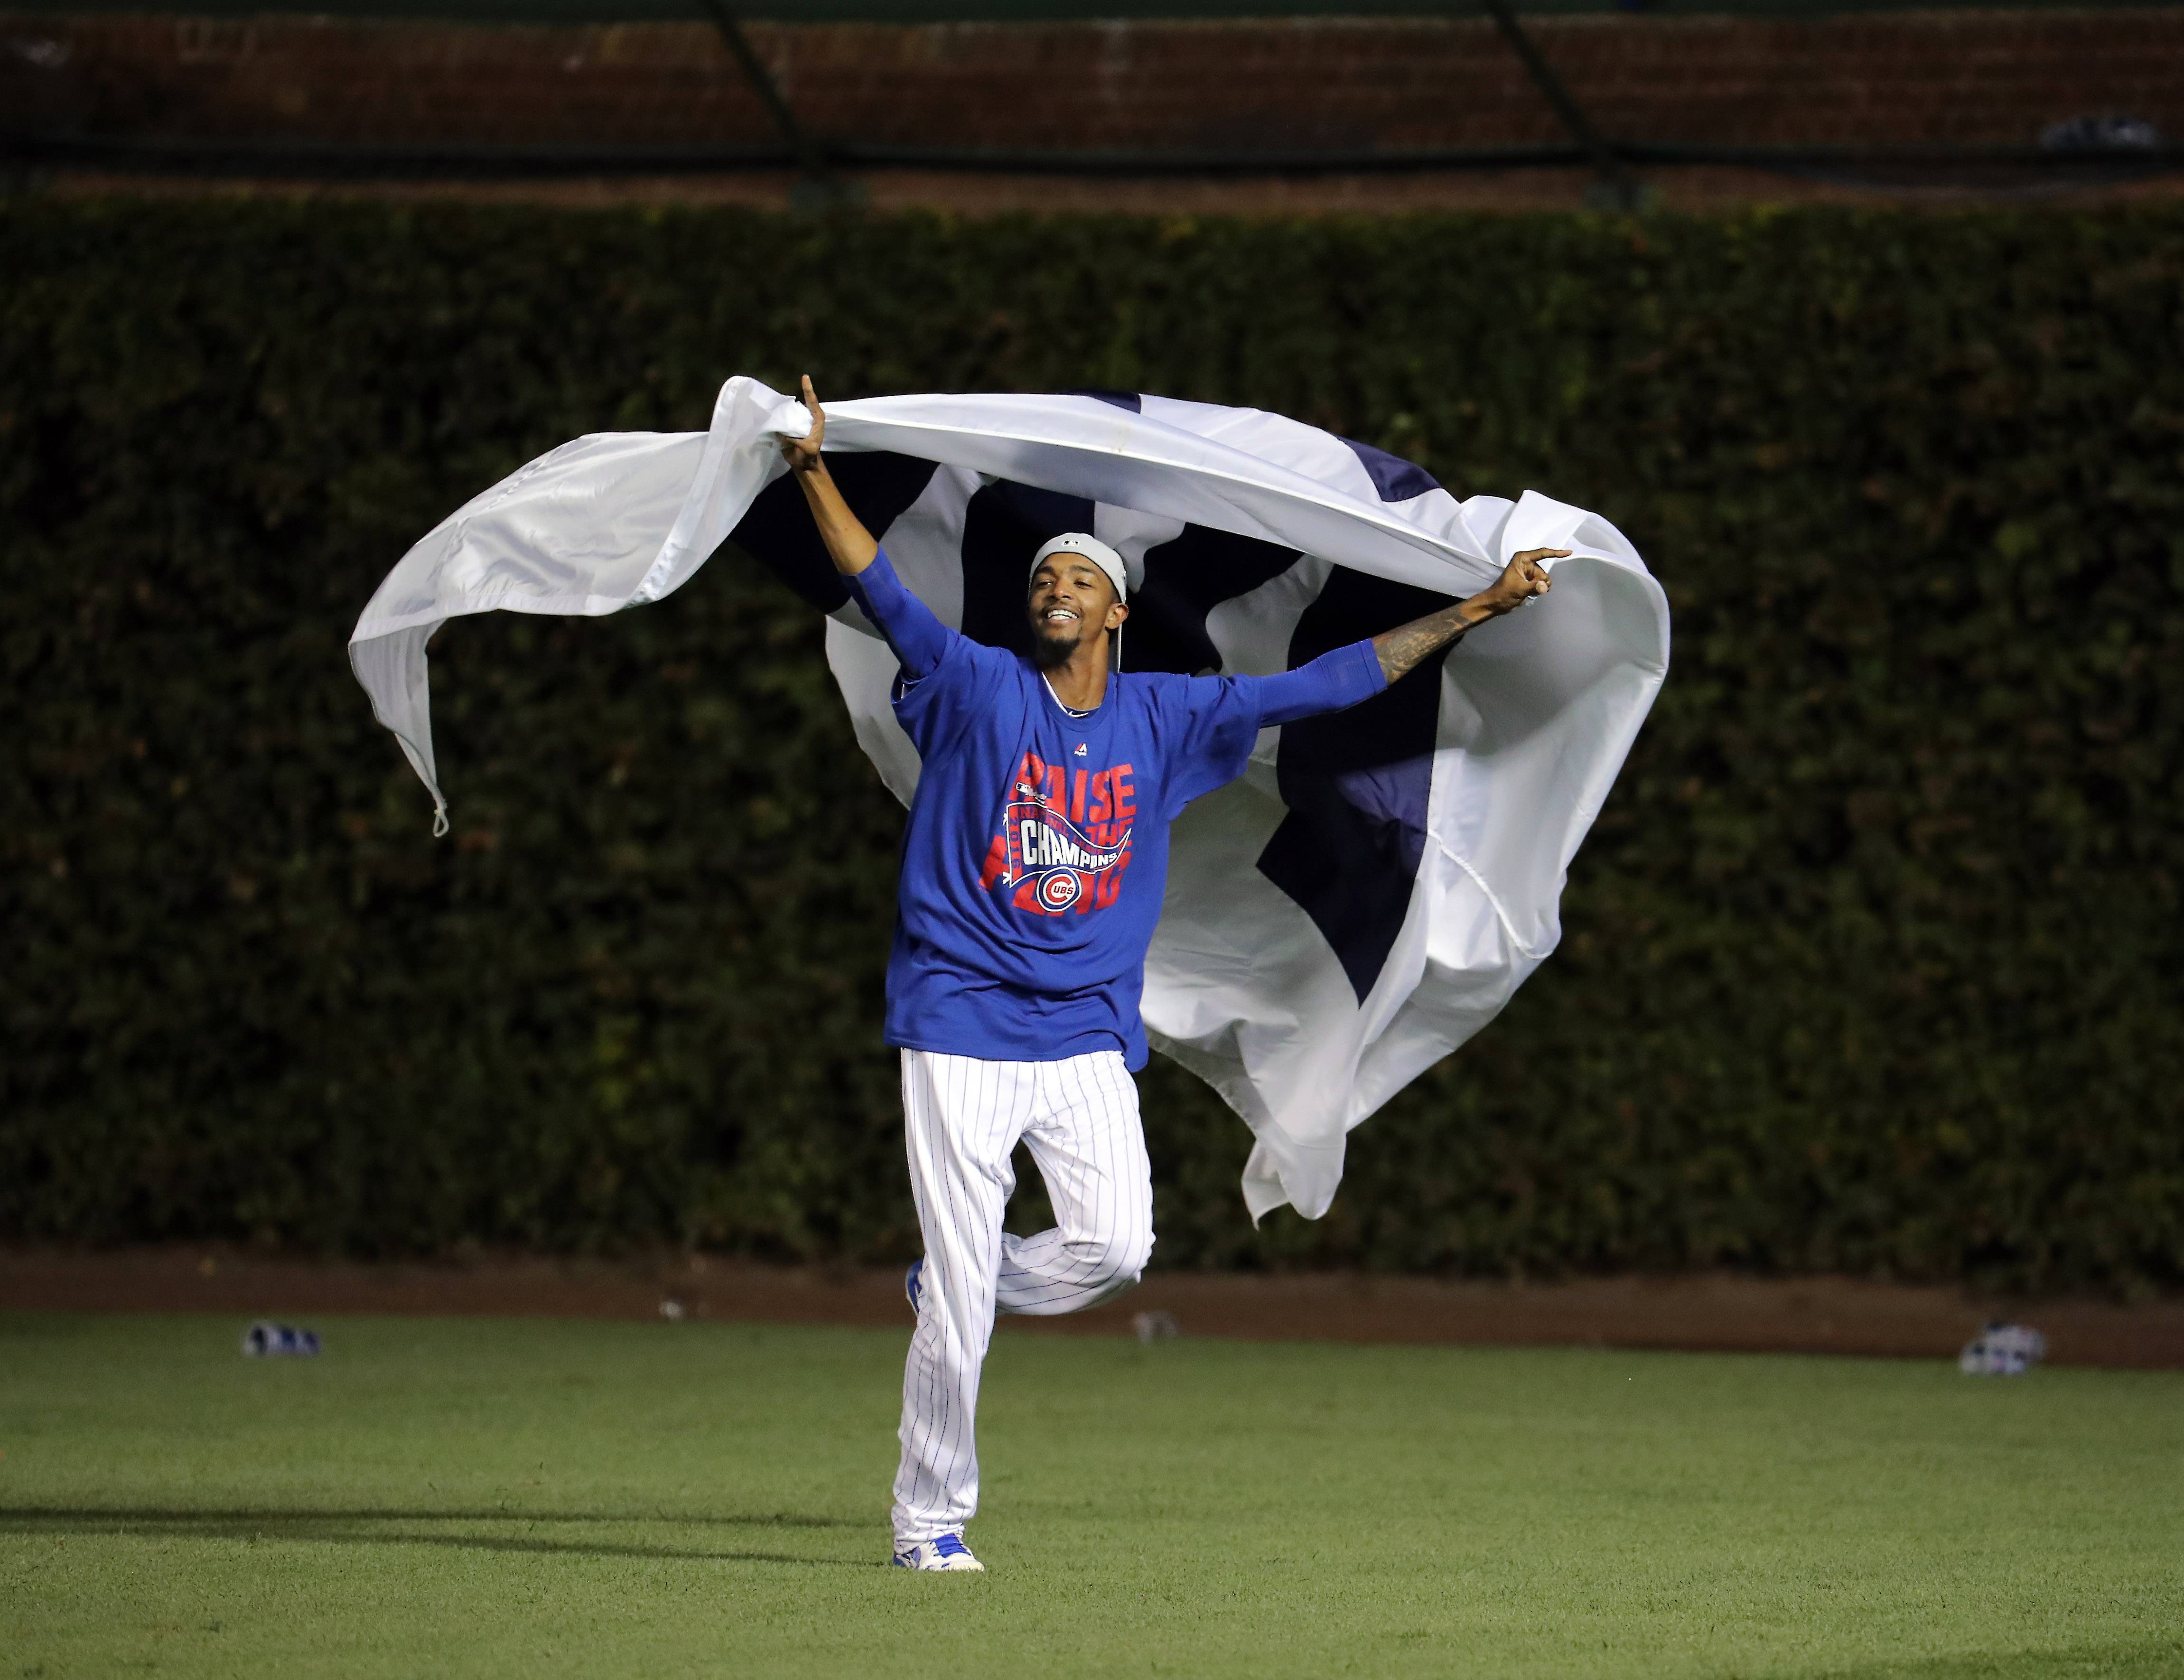 Steve Lundy/slundy@dailyherald.comChicago Cubs relief pitcher Carl Edwards (6) celebrates after Game 6 of baseball's National League championship series, Oct, 22 2016, at Wrigley Field in Chicago.